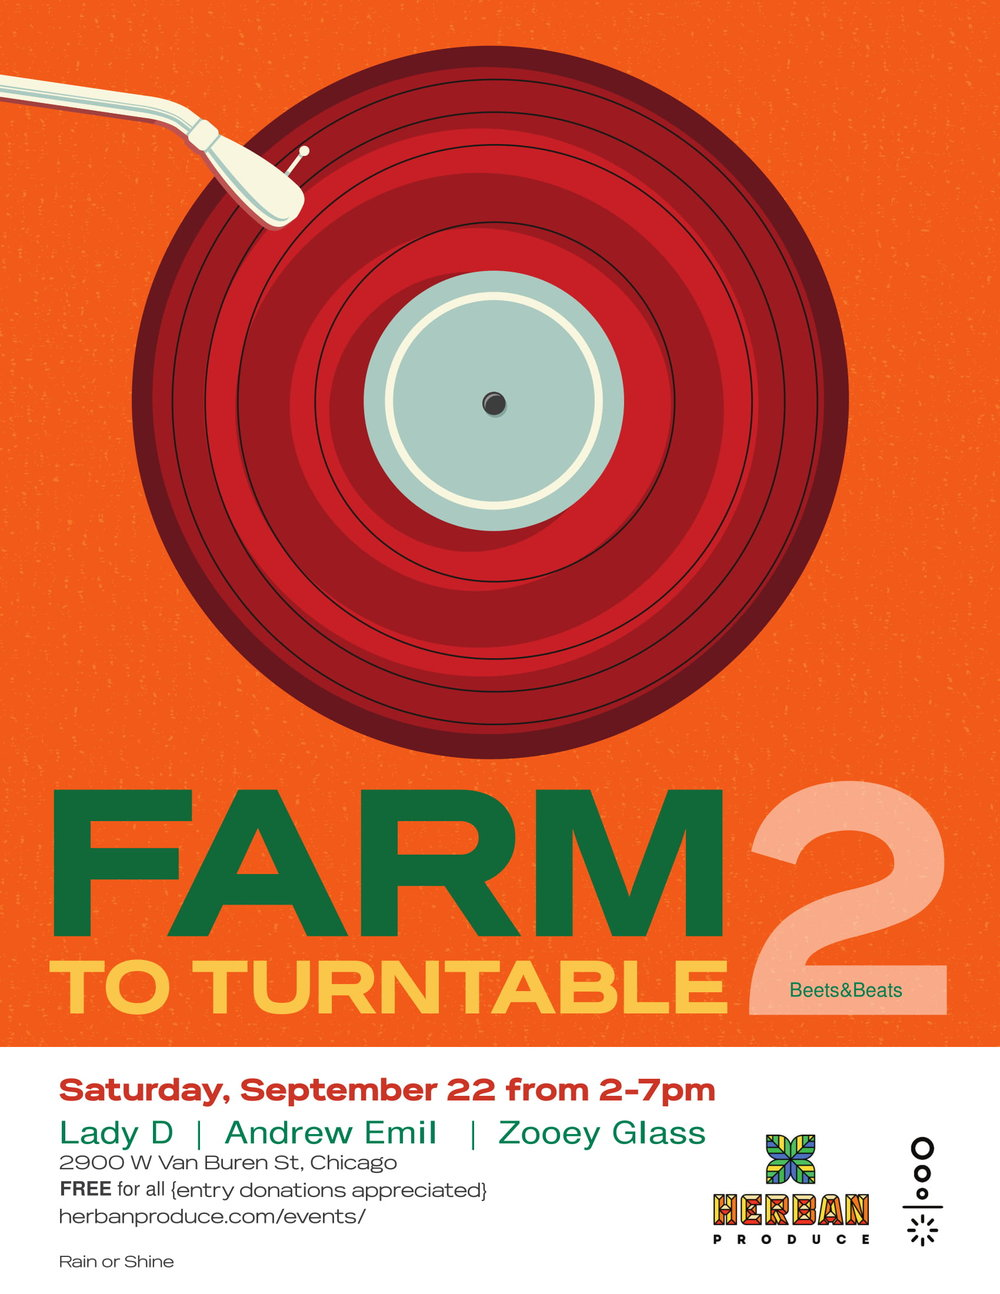 Farm-to-Turntable-Flyer 2 Final-1.jpg